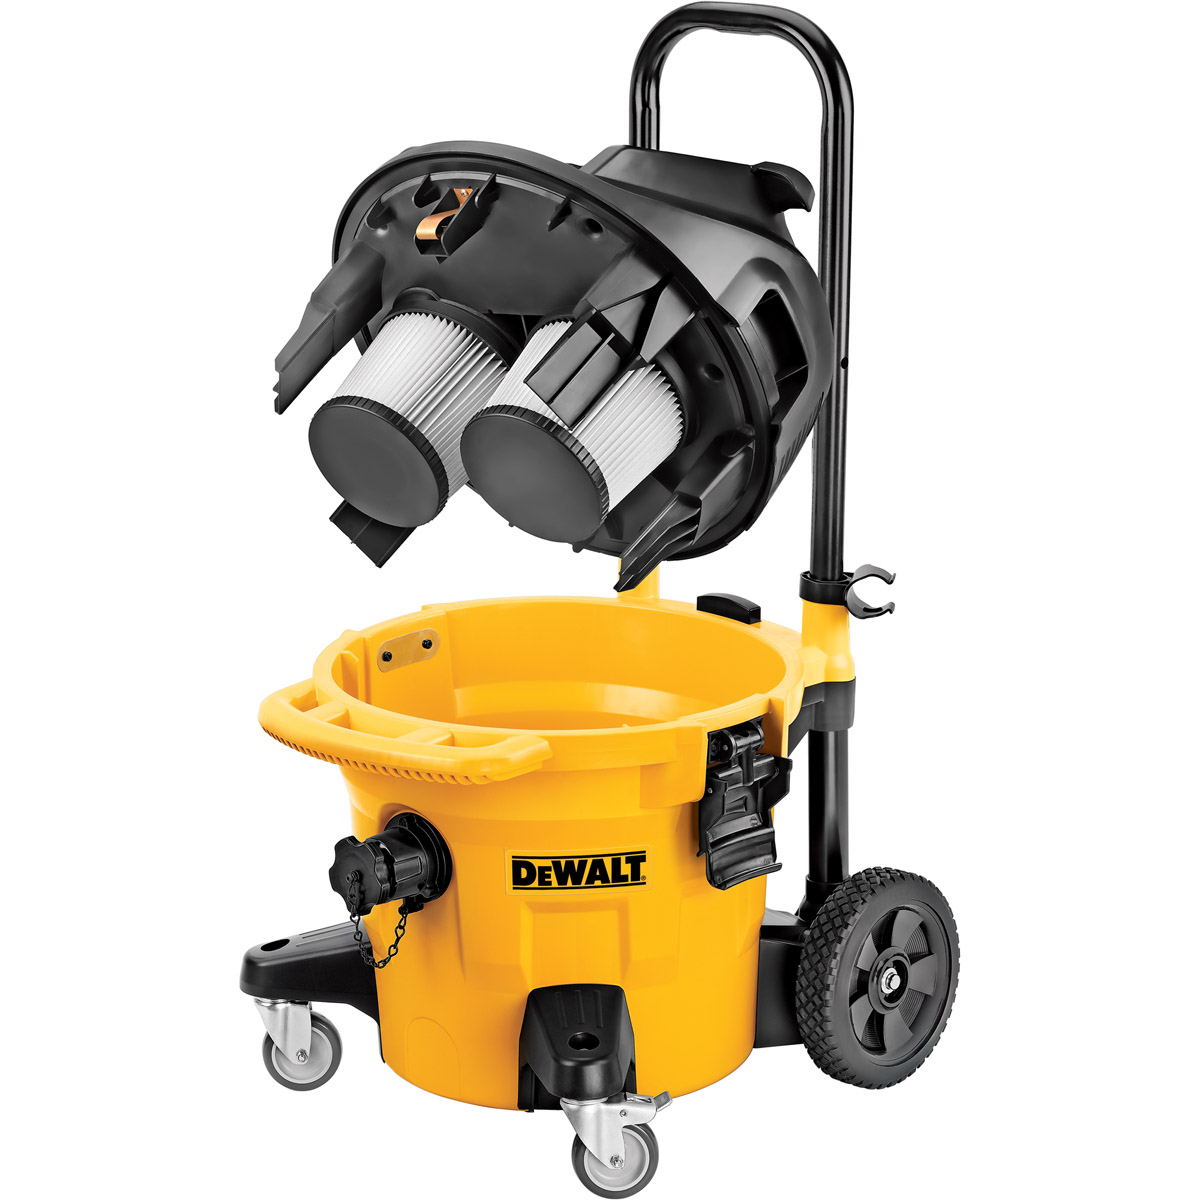 DeWALT DWV902M-LX - 38L Construction Dust Extractor M Class 110V